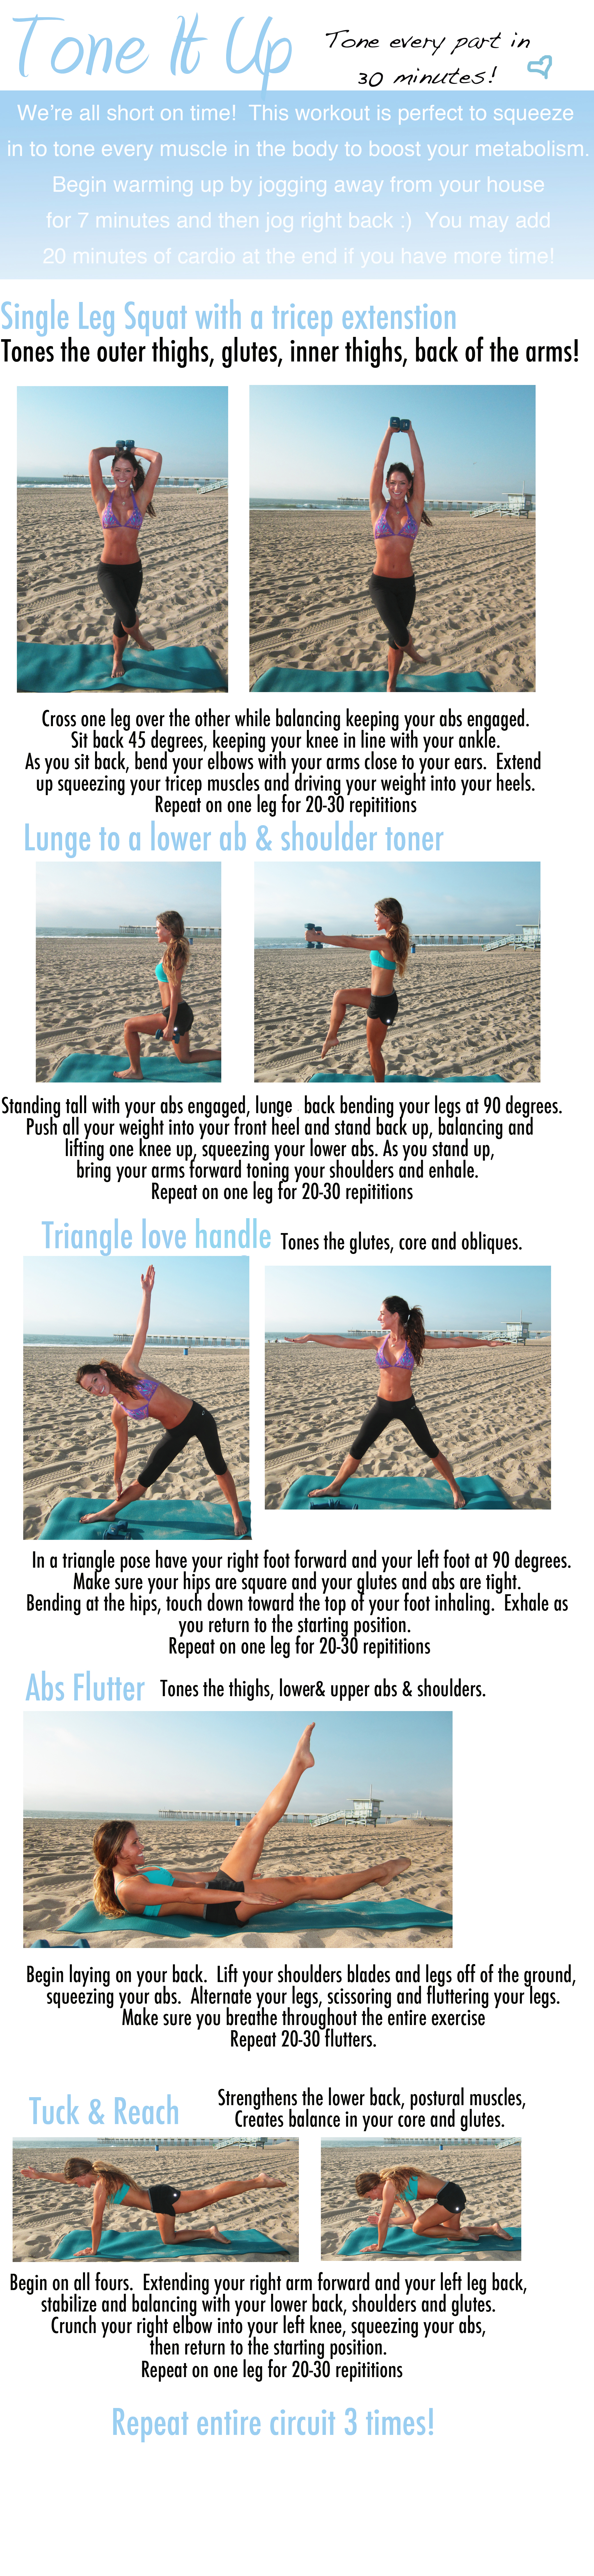 tone-it-up-workout-printable-routine